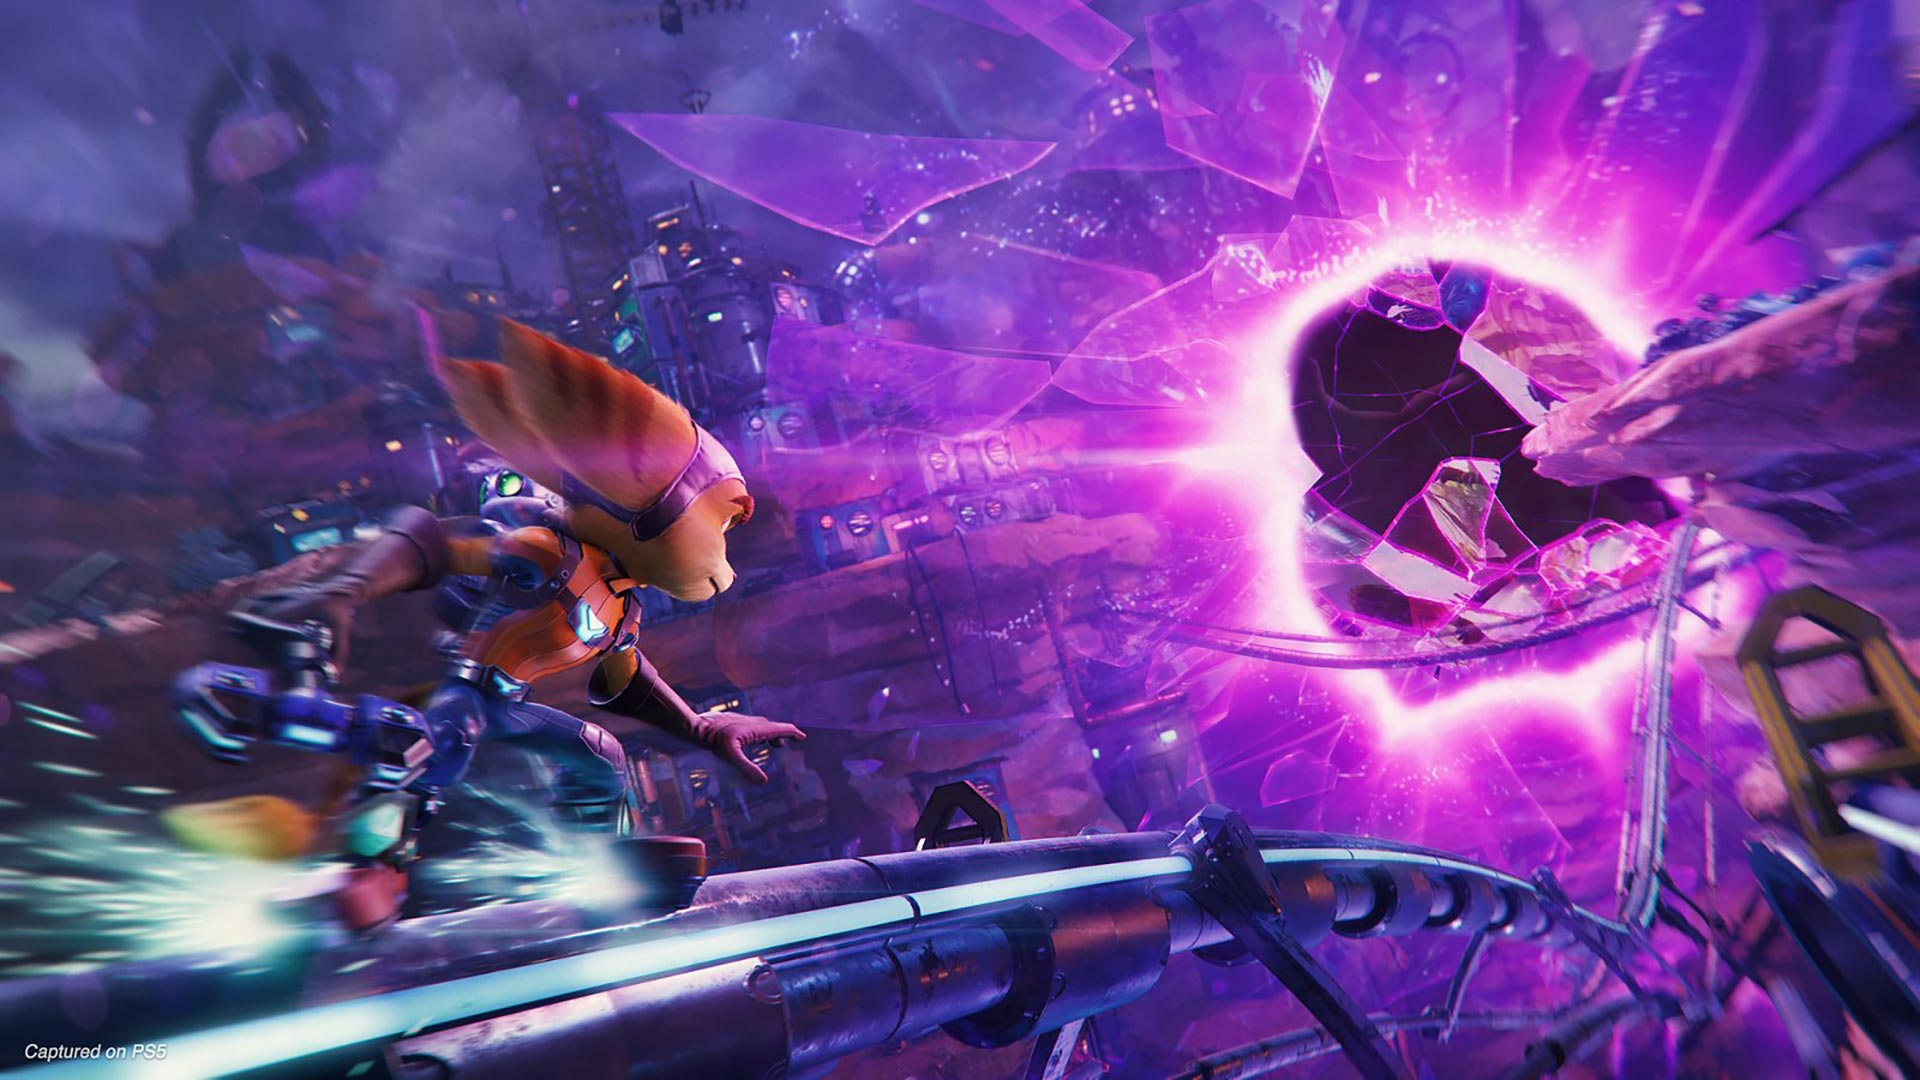 Ratchet and Clank ride a rail into a rift